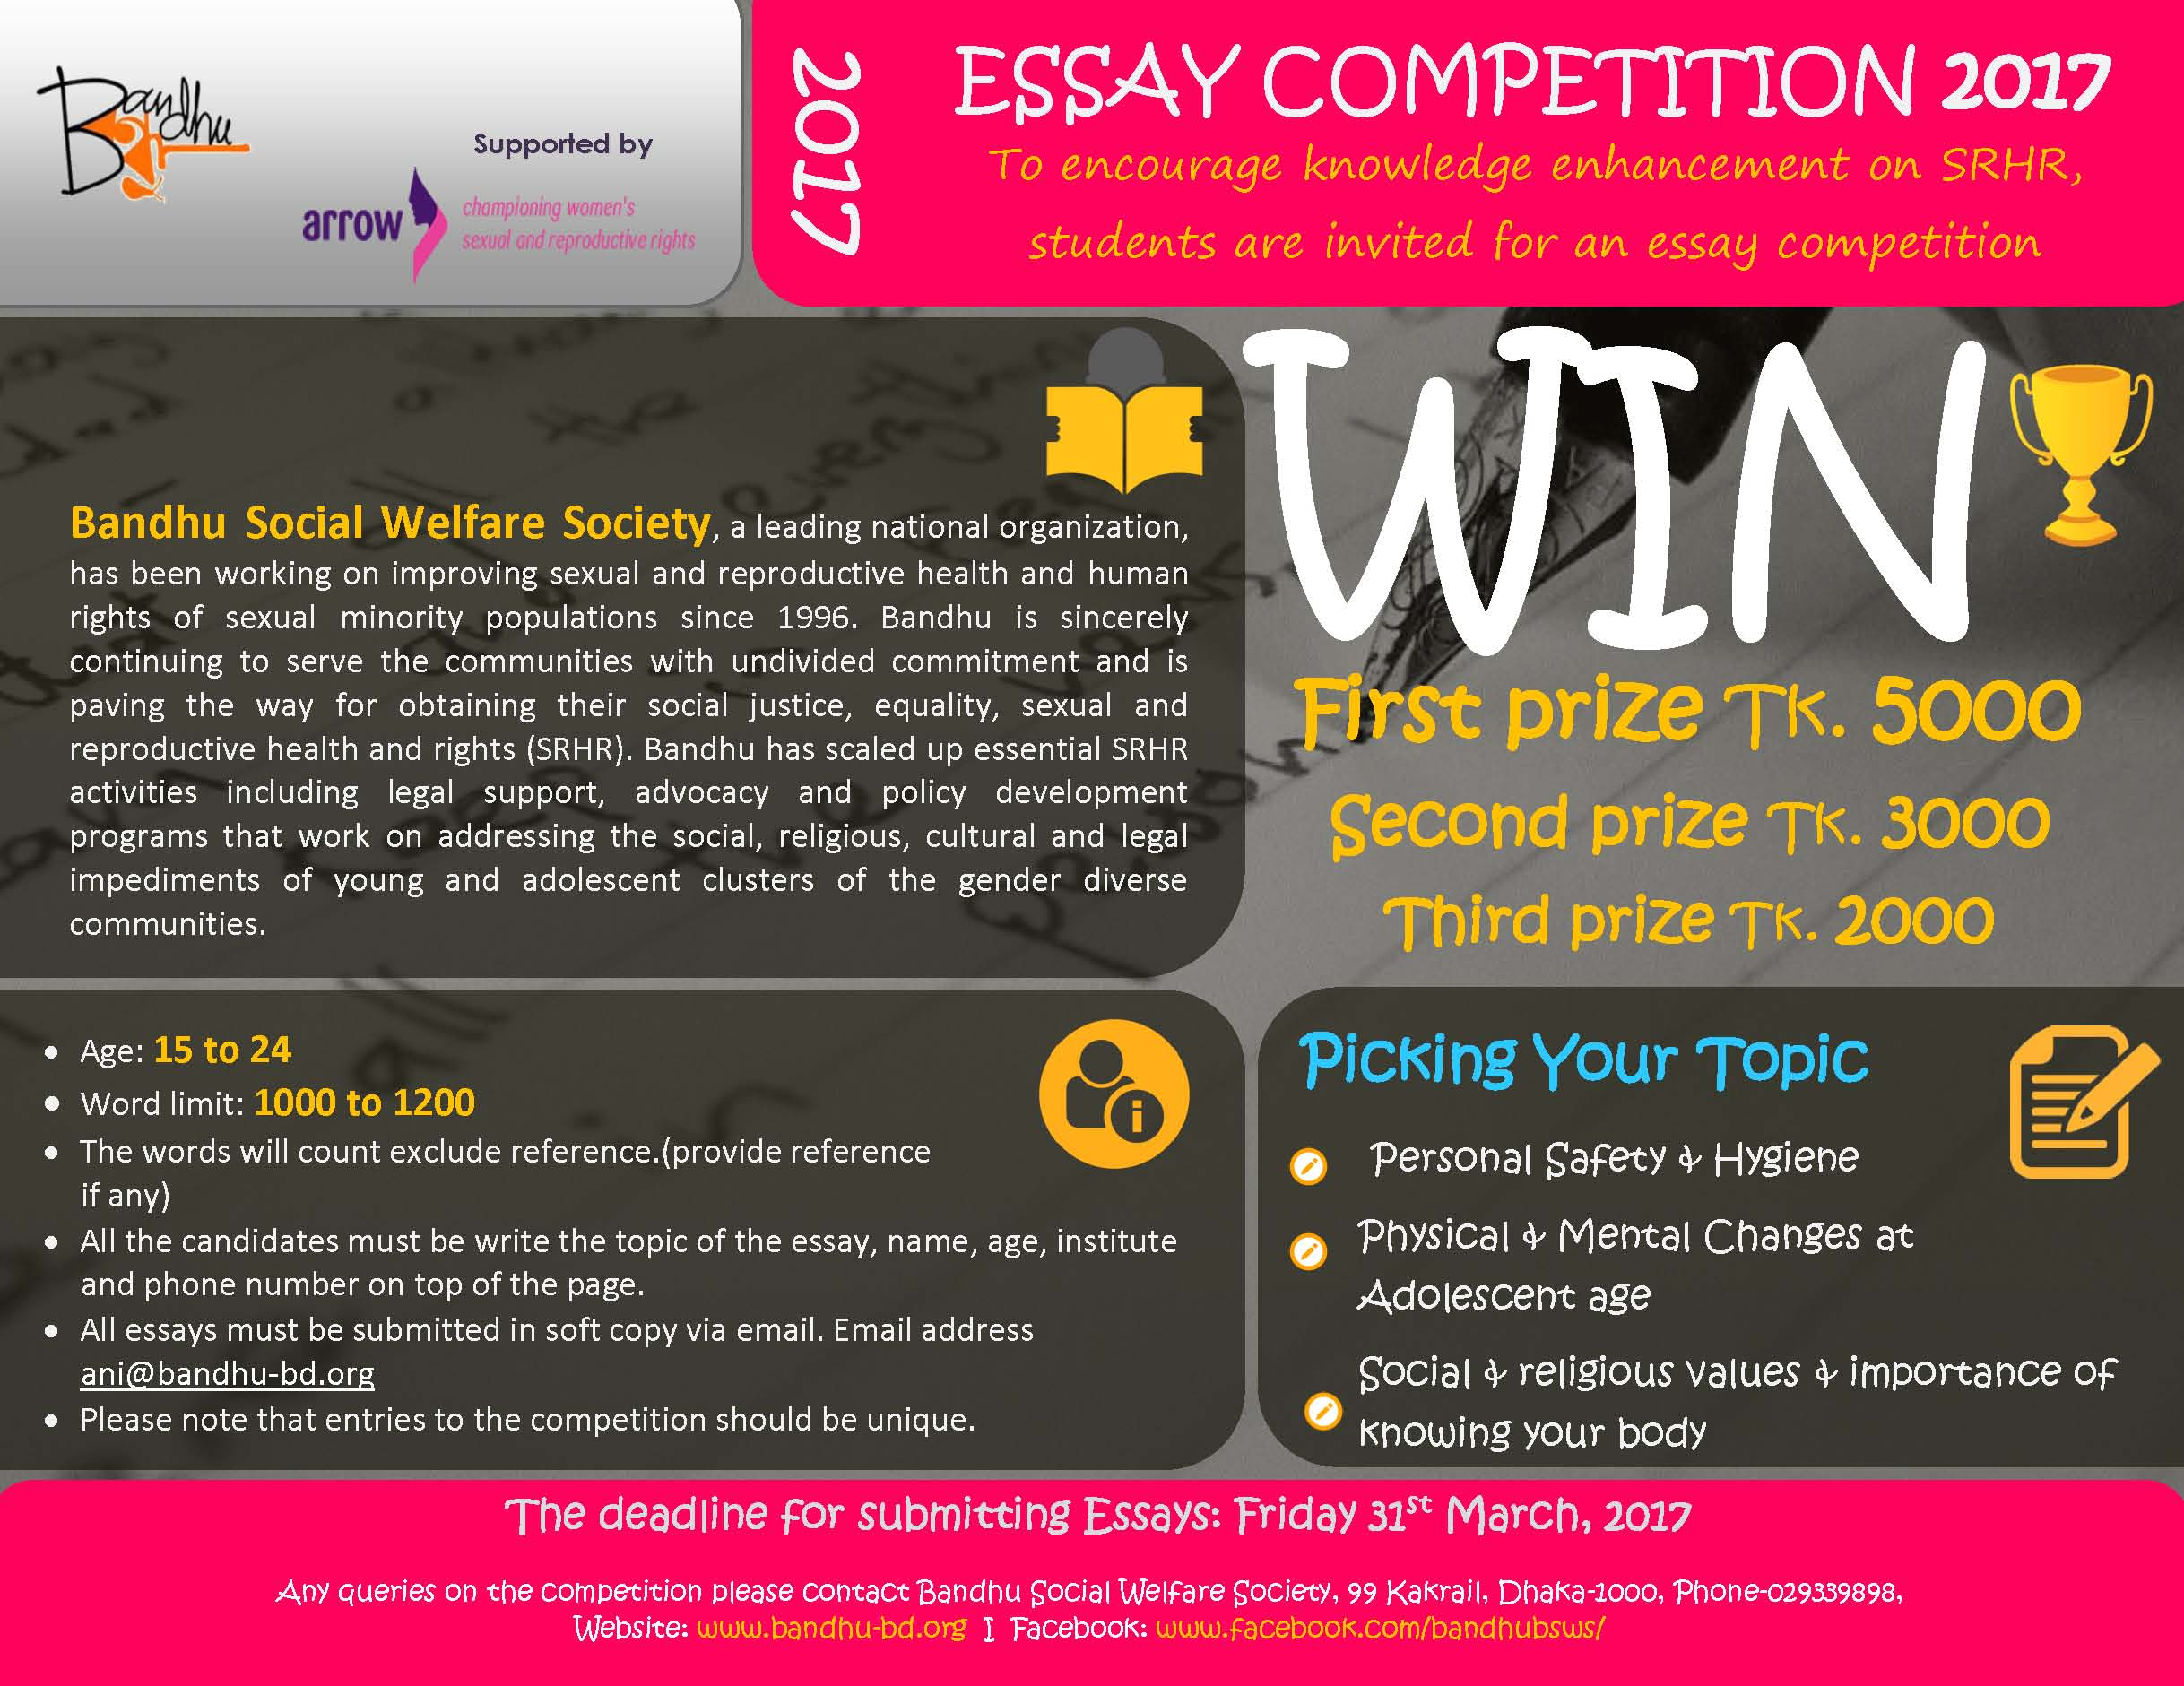 001 Essay Example Competition Contest Staggering 2017 Online India Writing High School Optimist International Full